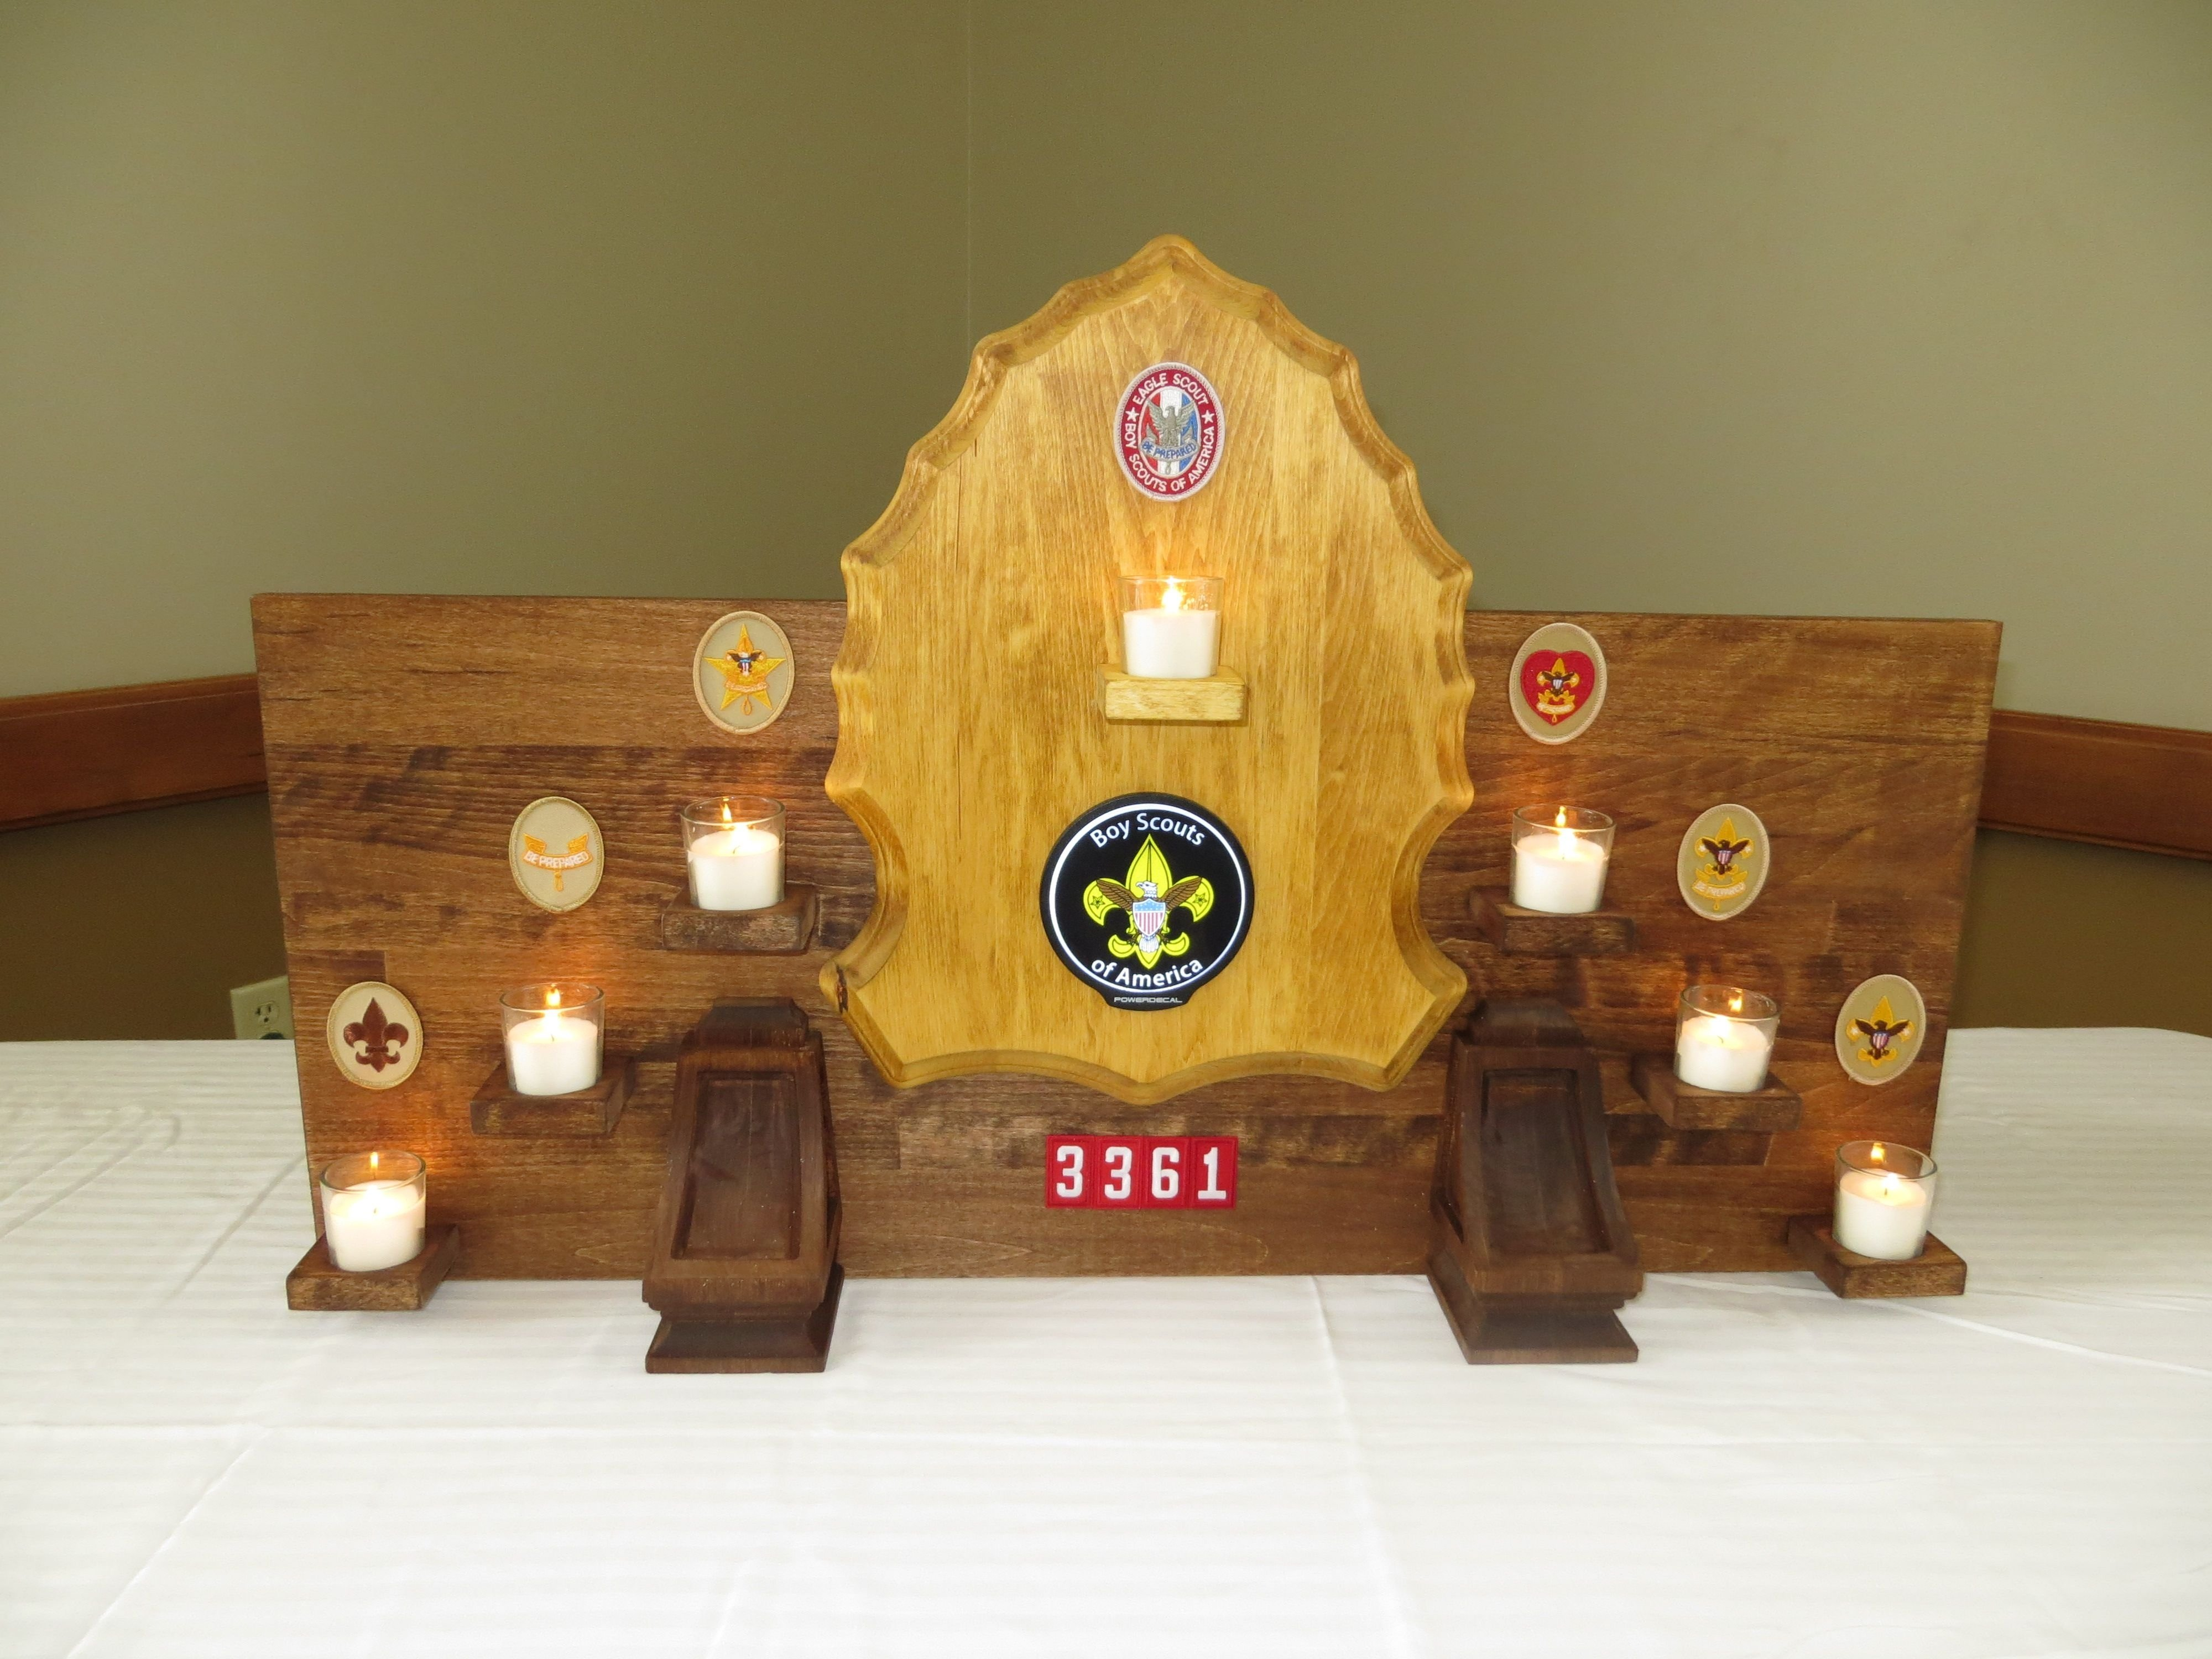 10 Spectacular Boy Scout Court Of Honor Ideas this is a candle holder mark and ben made for our boy scout court of 1